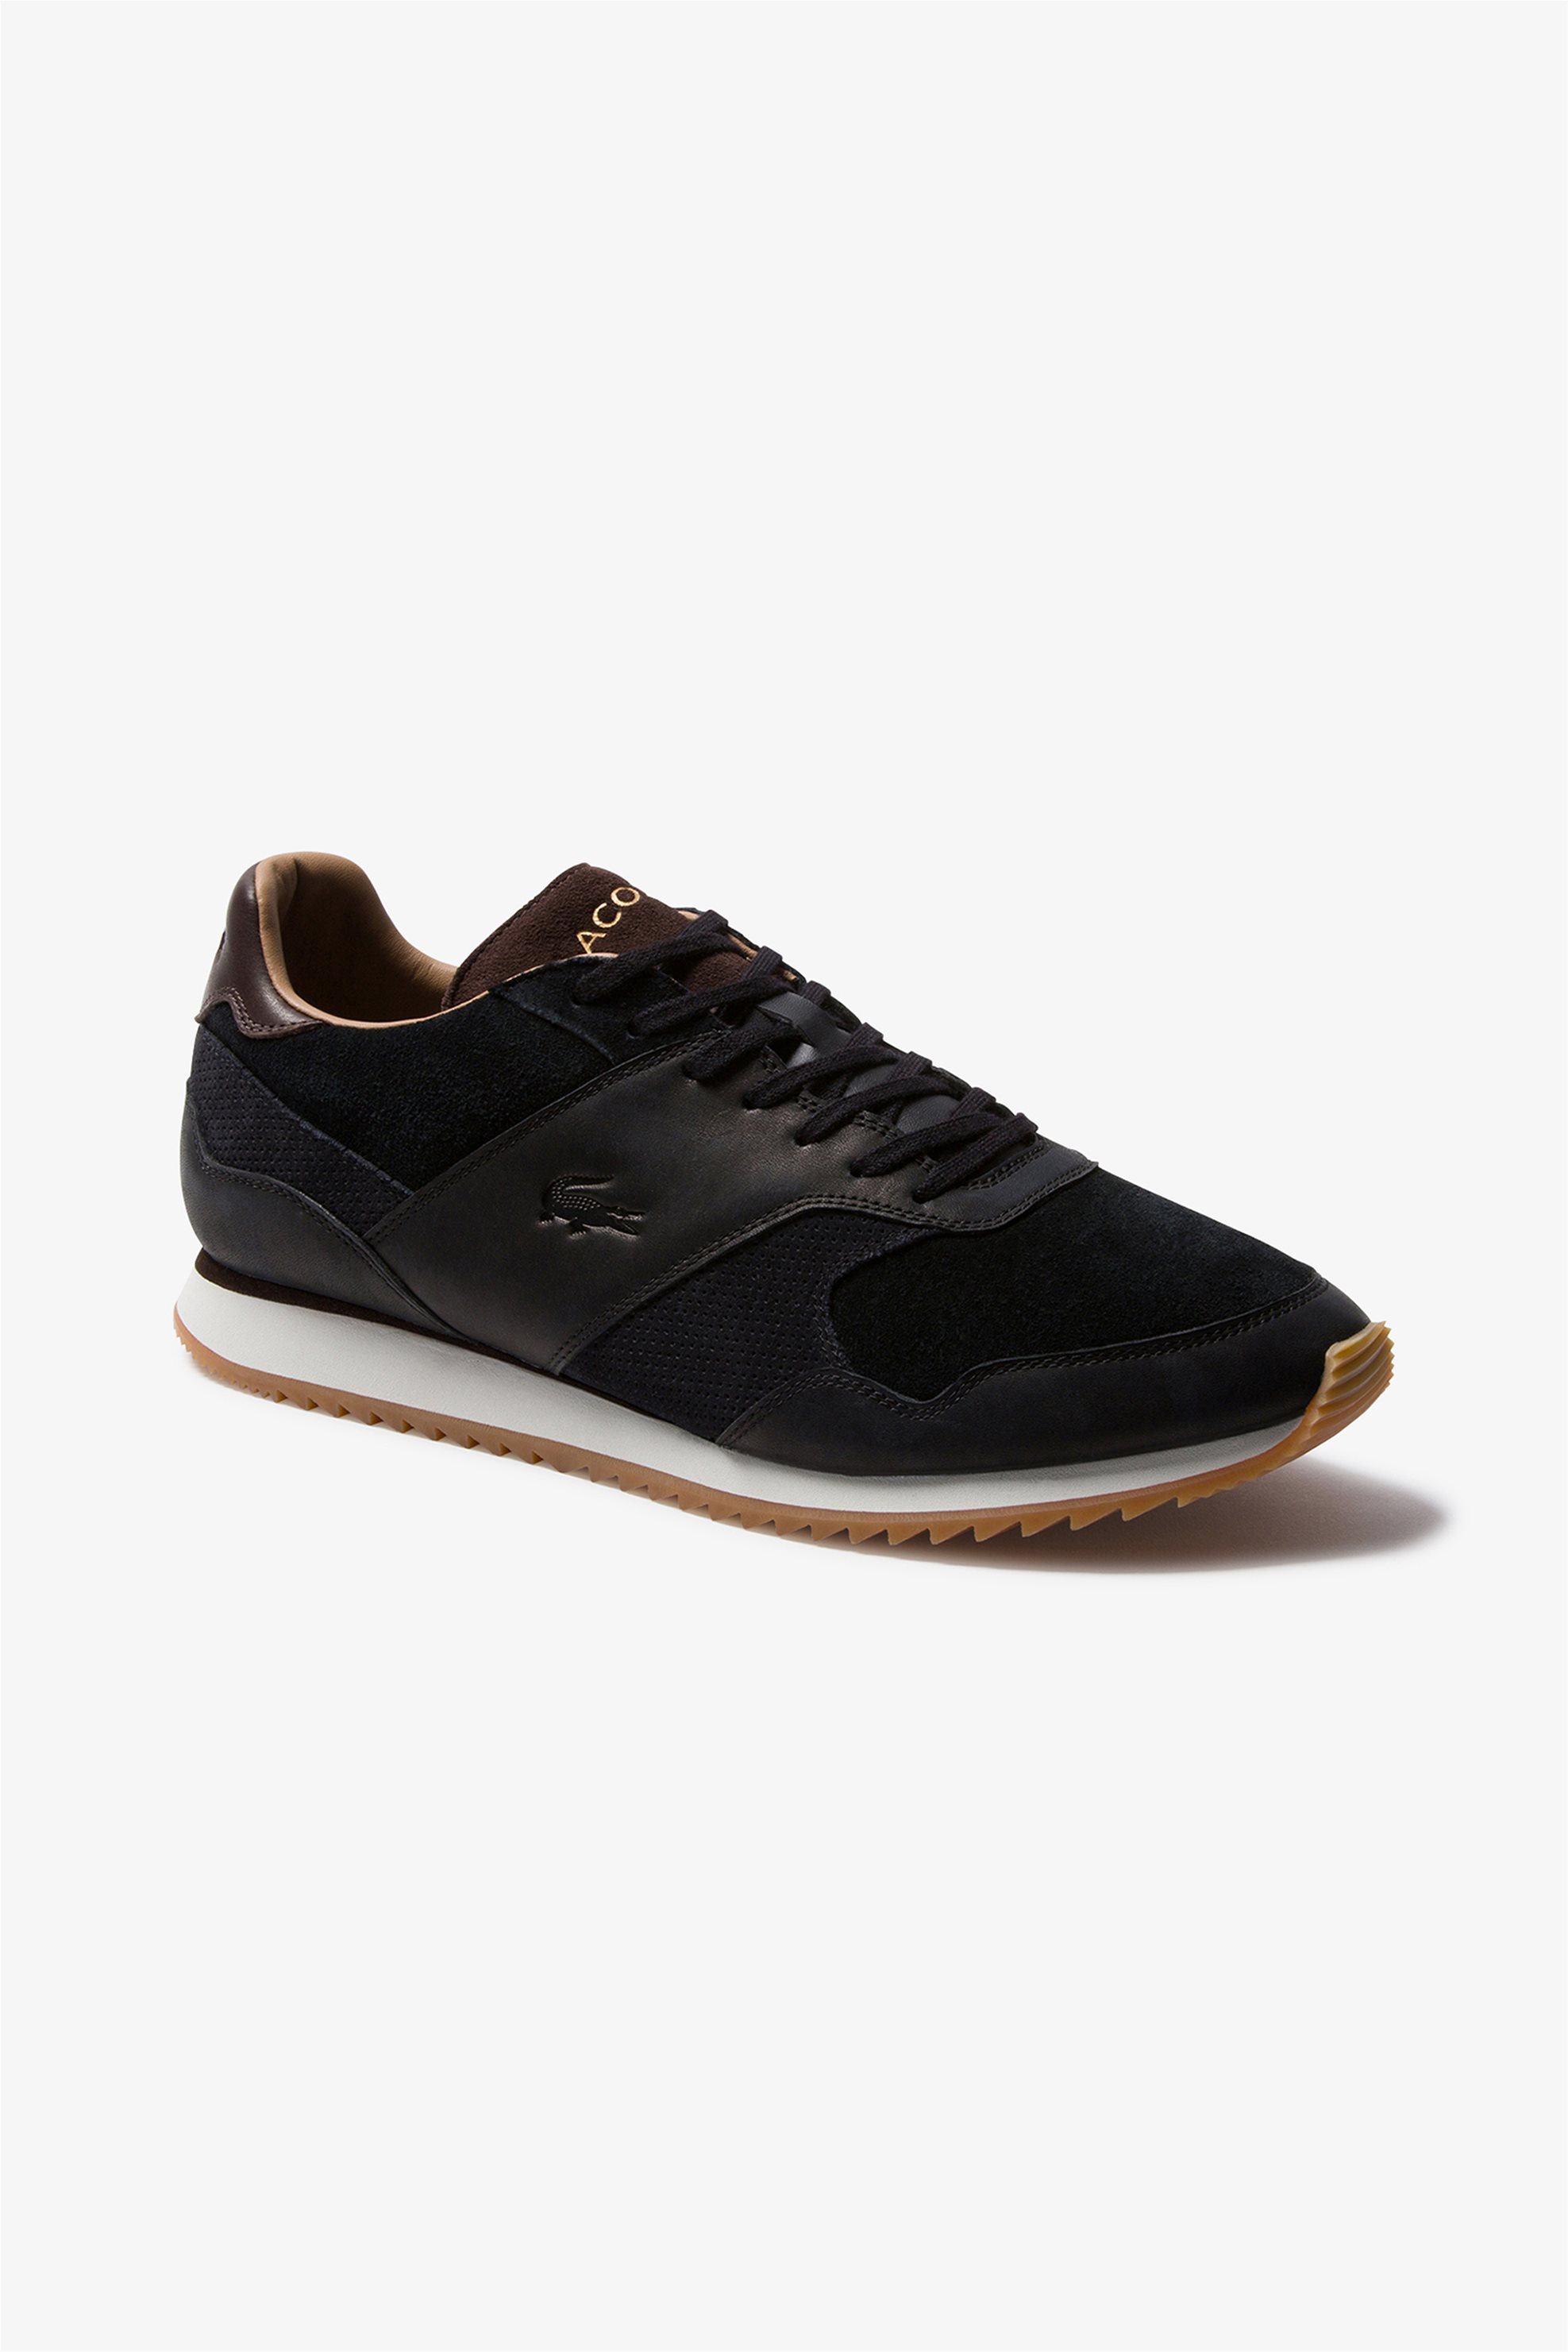 """Lacoste ανδρικά suede sneakers """"Aesthet Luxe 120 1 SMA"""" – 39SMA00342M5 – Λευκό"""